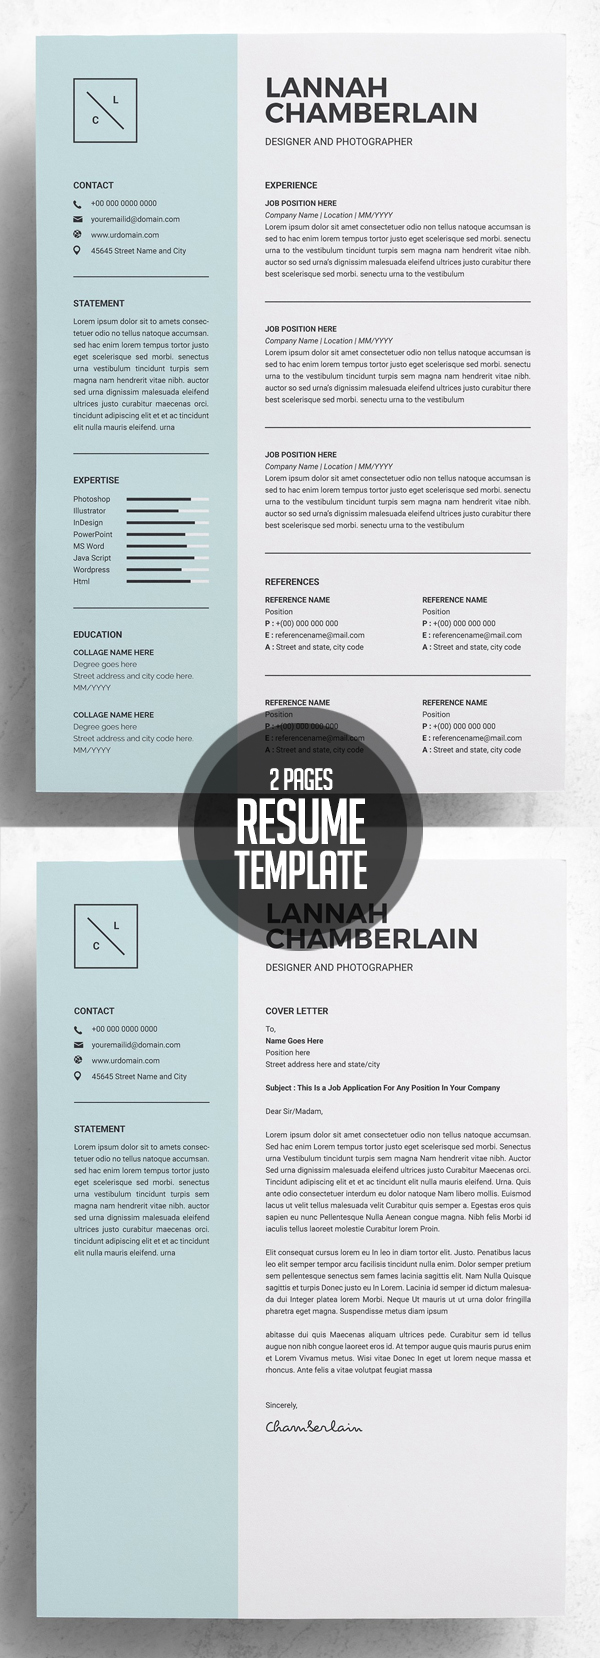 Clean Resume Template (2 Pages)